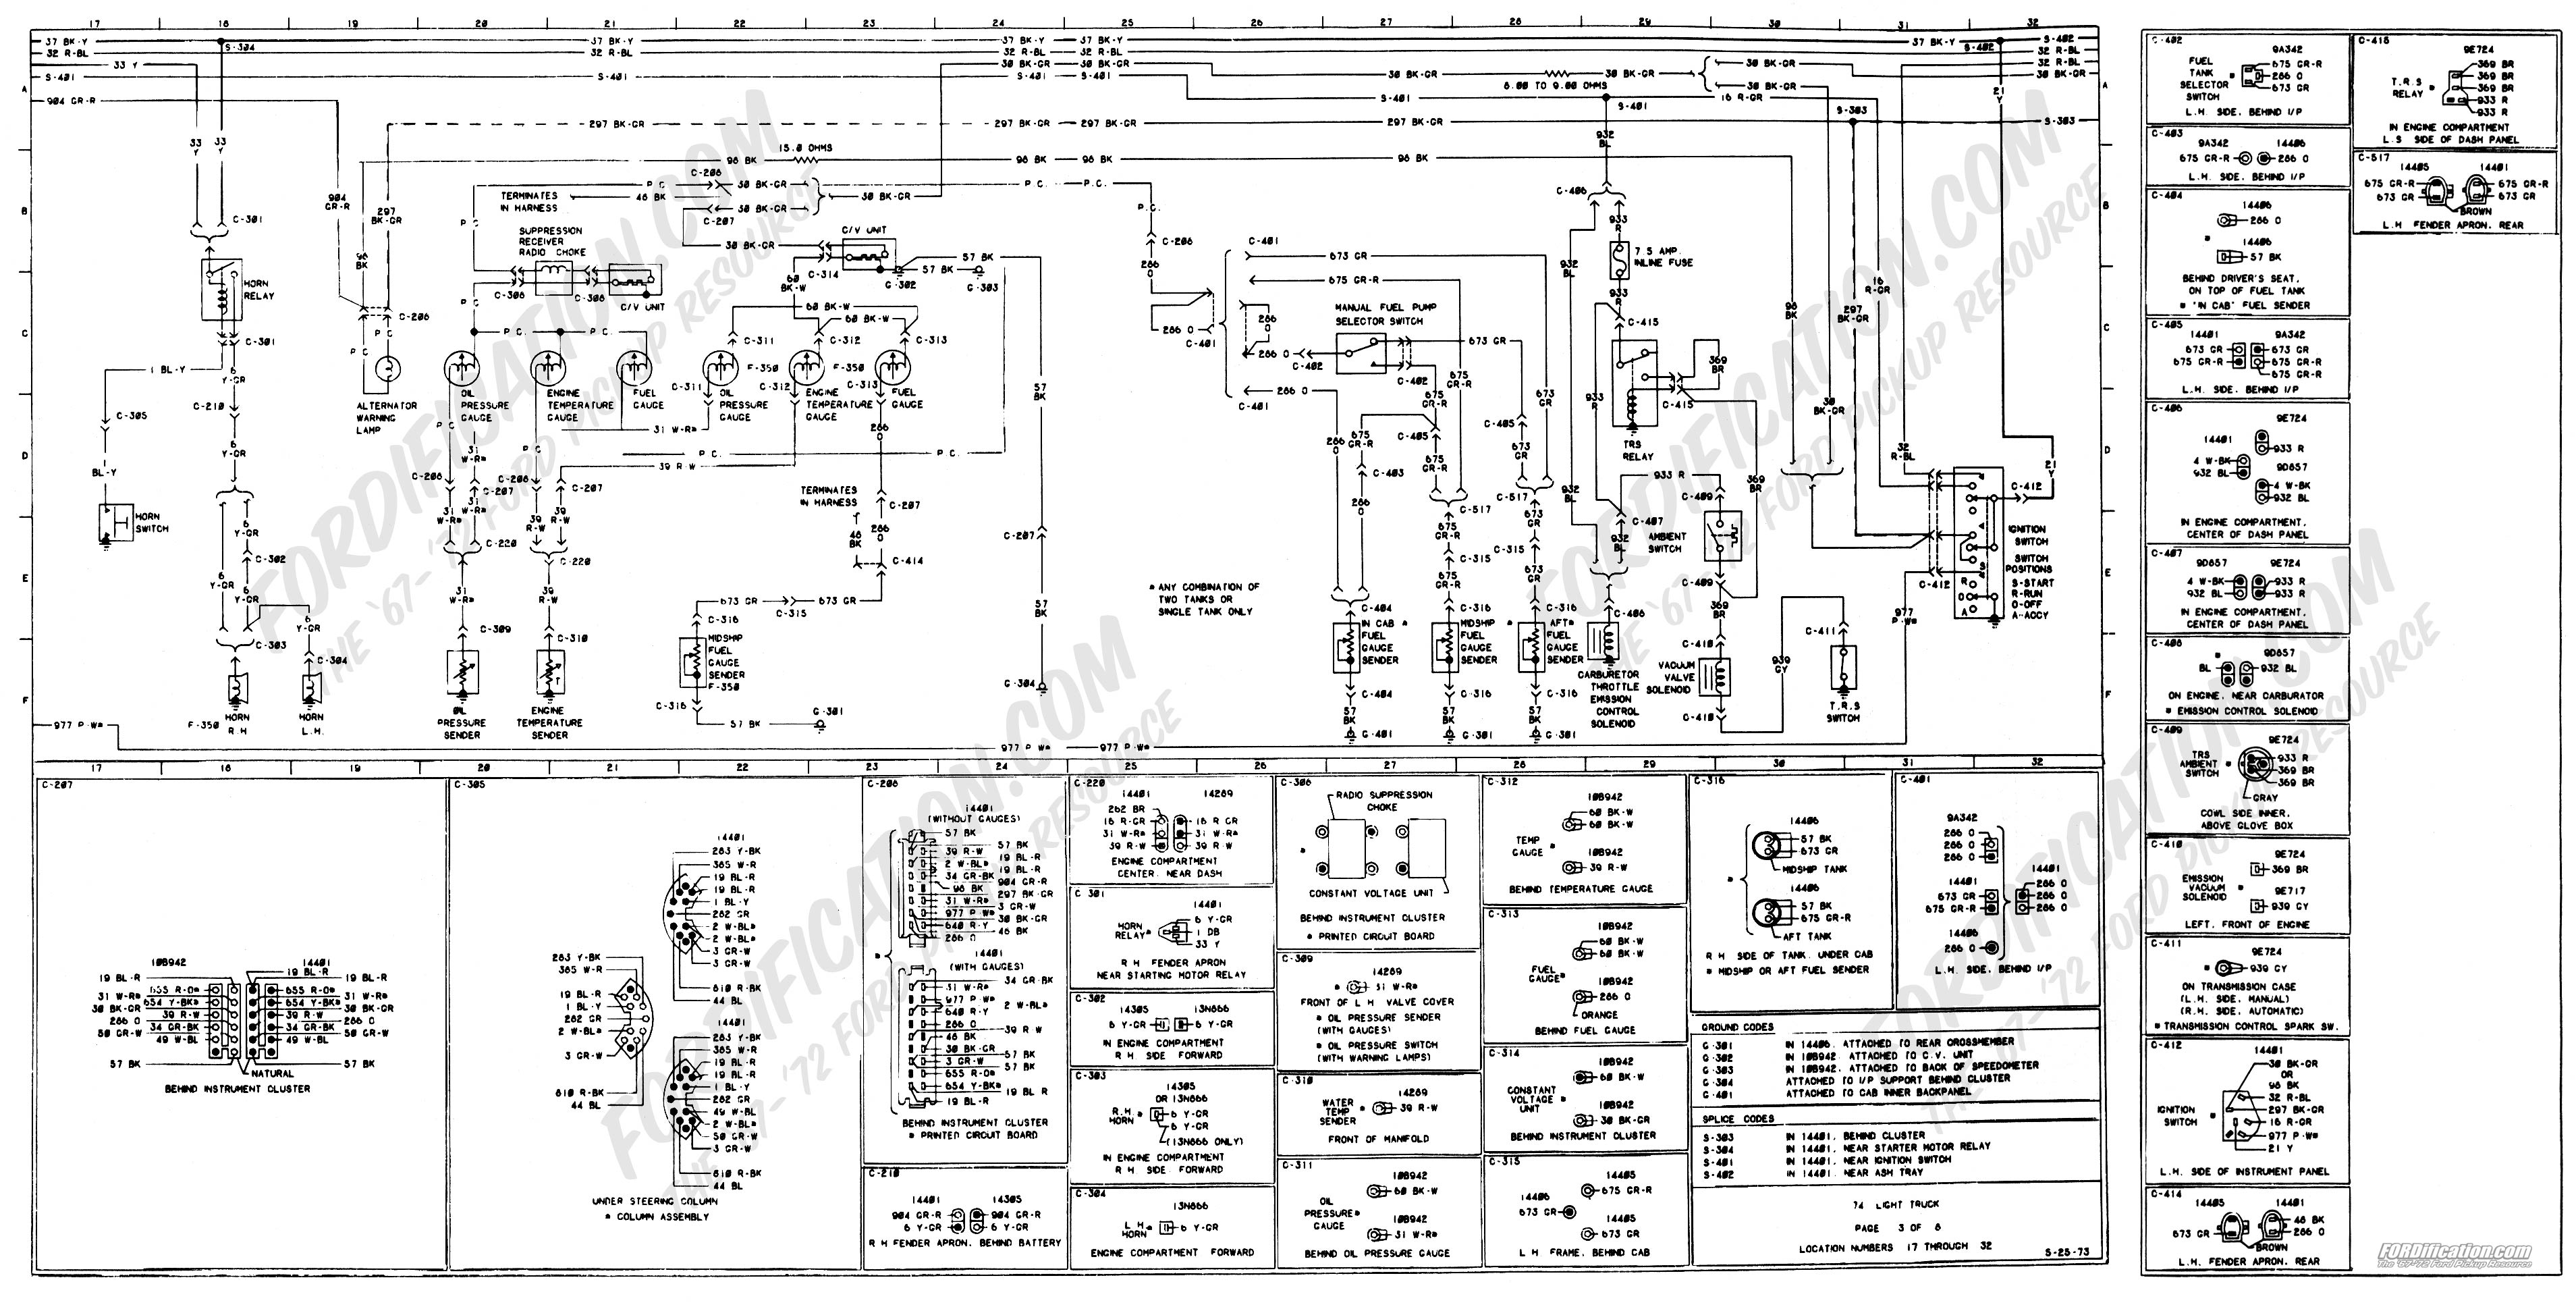 1979 Ford F 250 Wiring Diagram Diagrams Option 1983 150 Ignition 1973 Truck Schematics Fordification Net Turn Signals